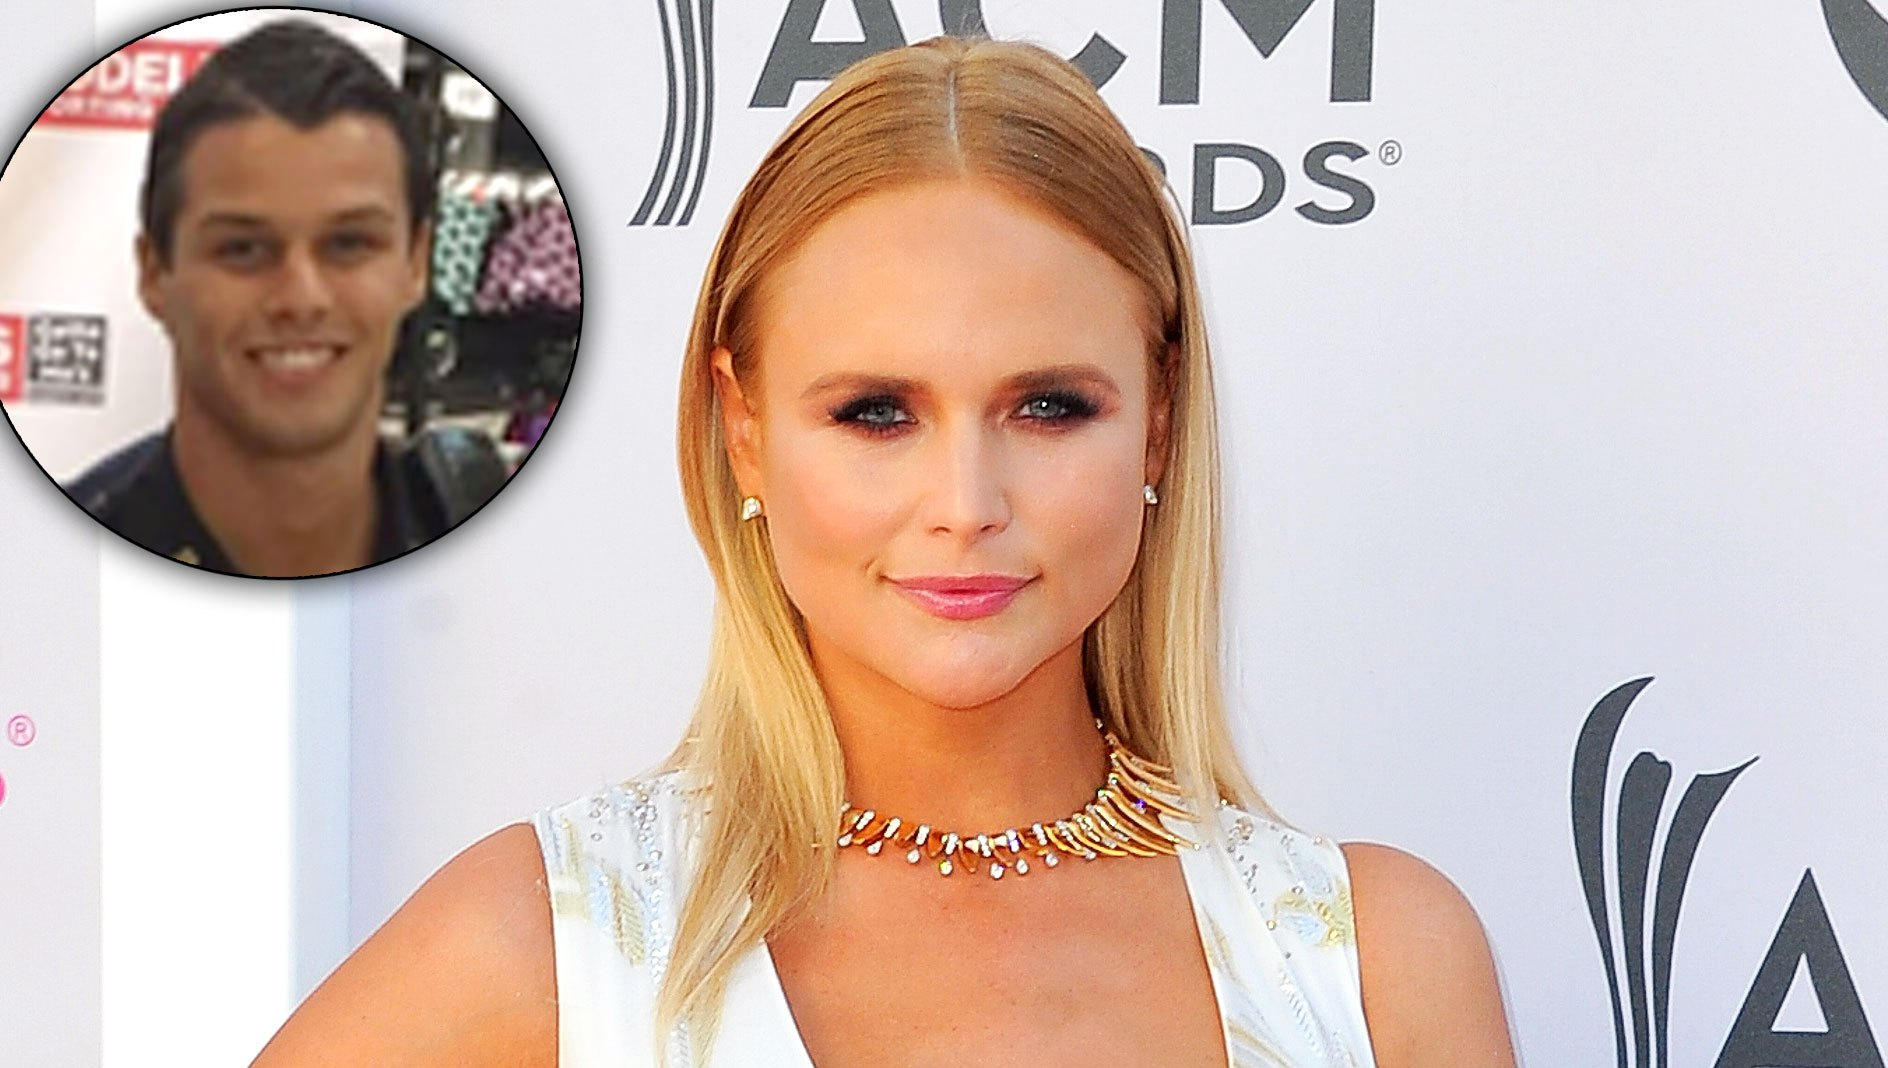 Miranda Lambert's New Husband Cheated on His Fiancee, Got Another Woman Pregnant, Ex's Mom Claims